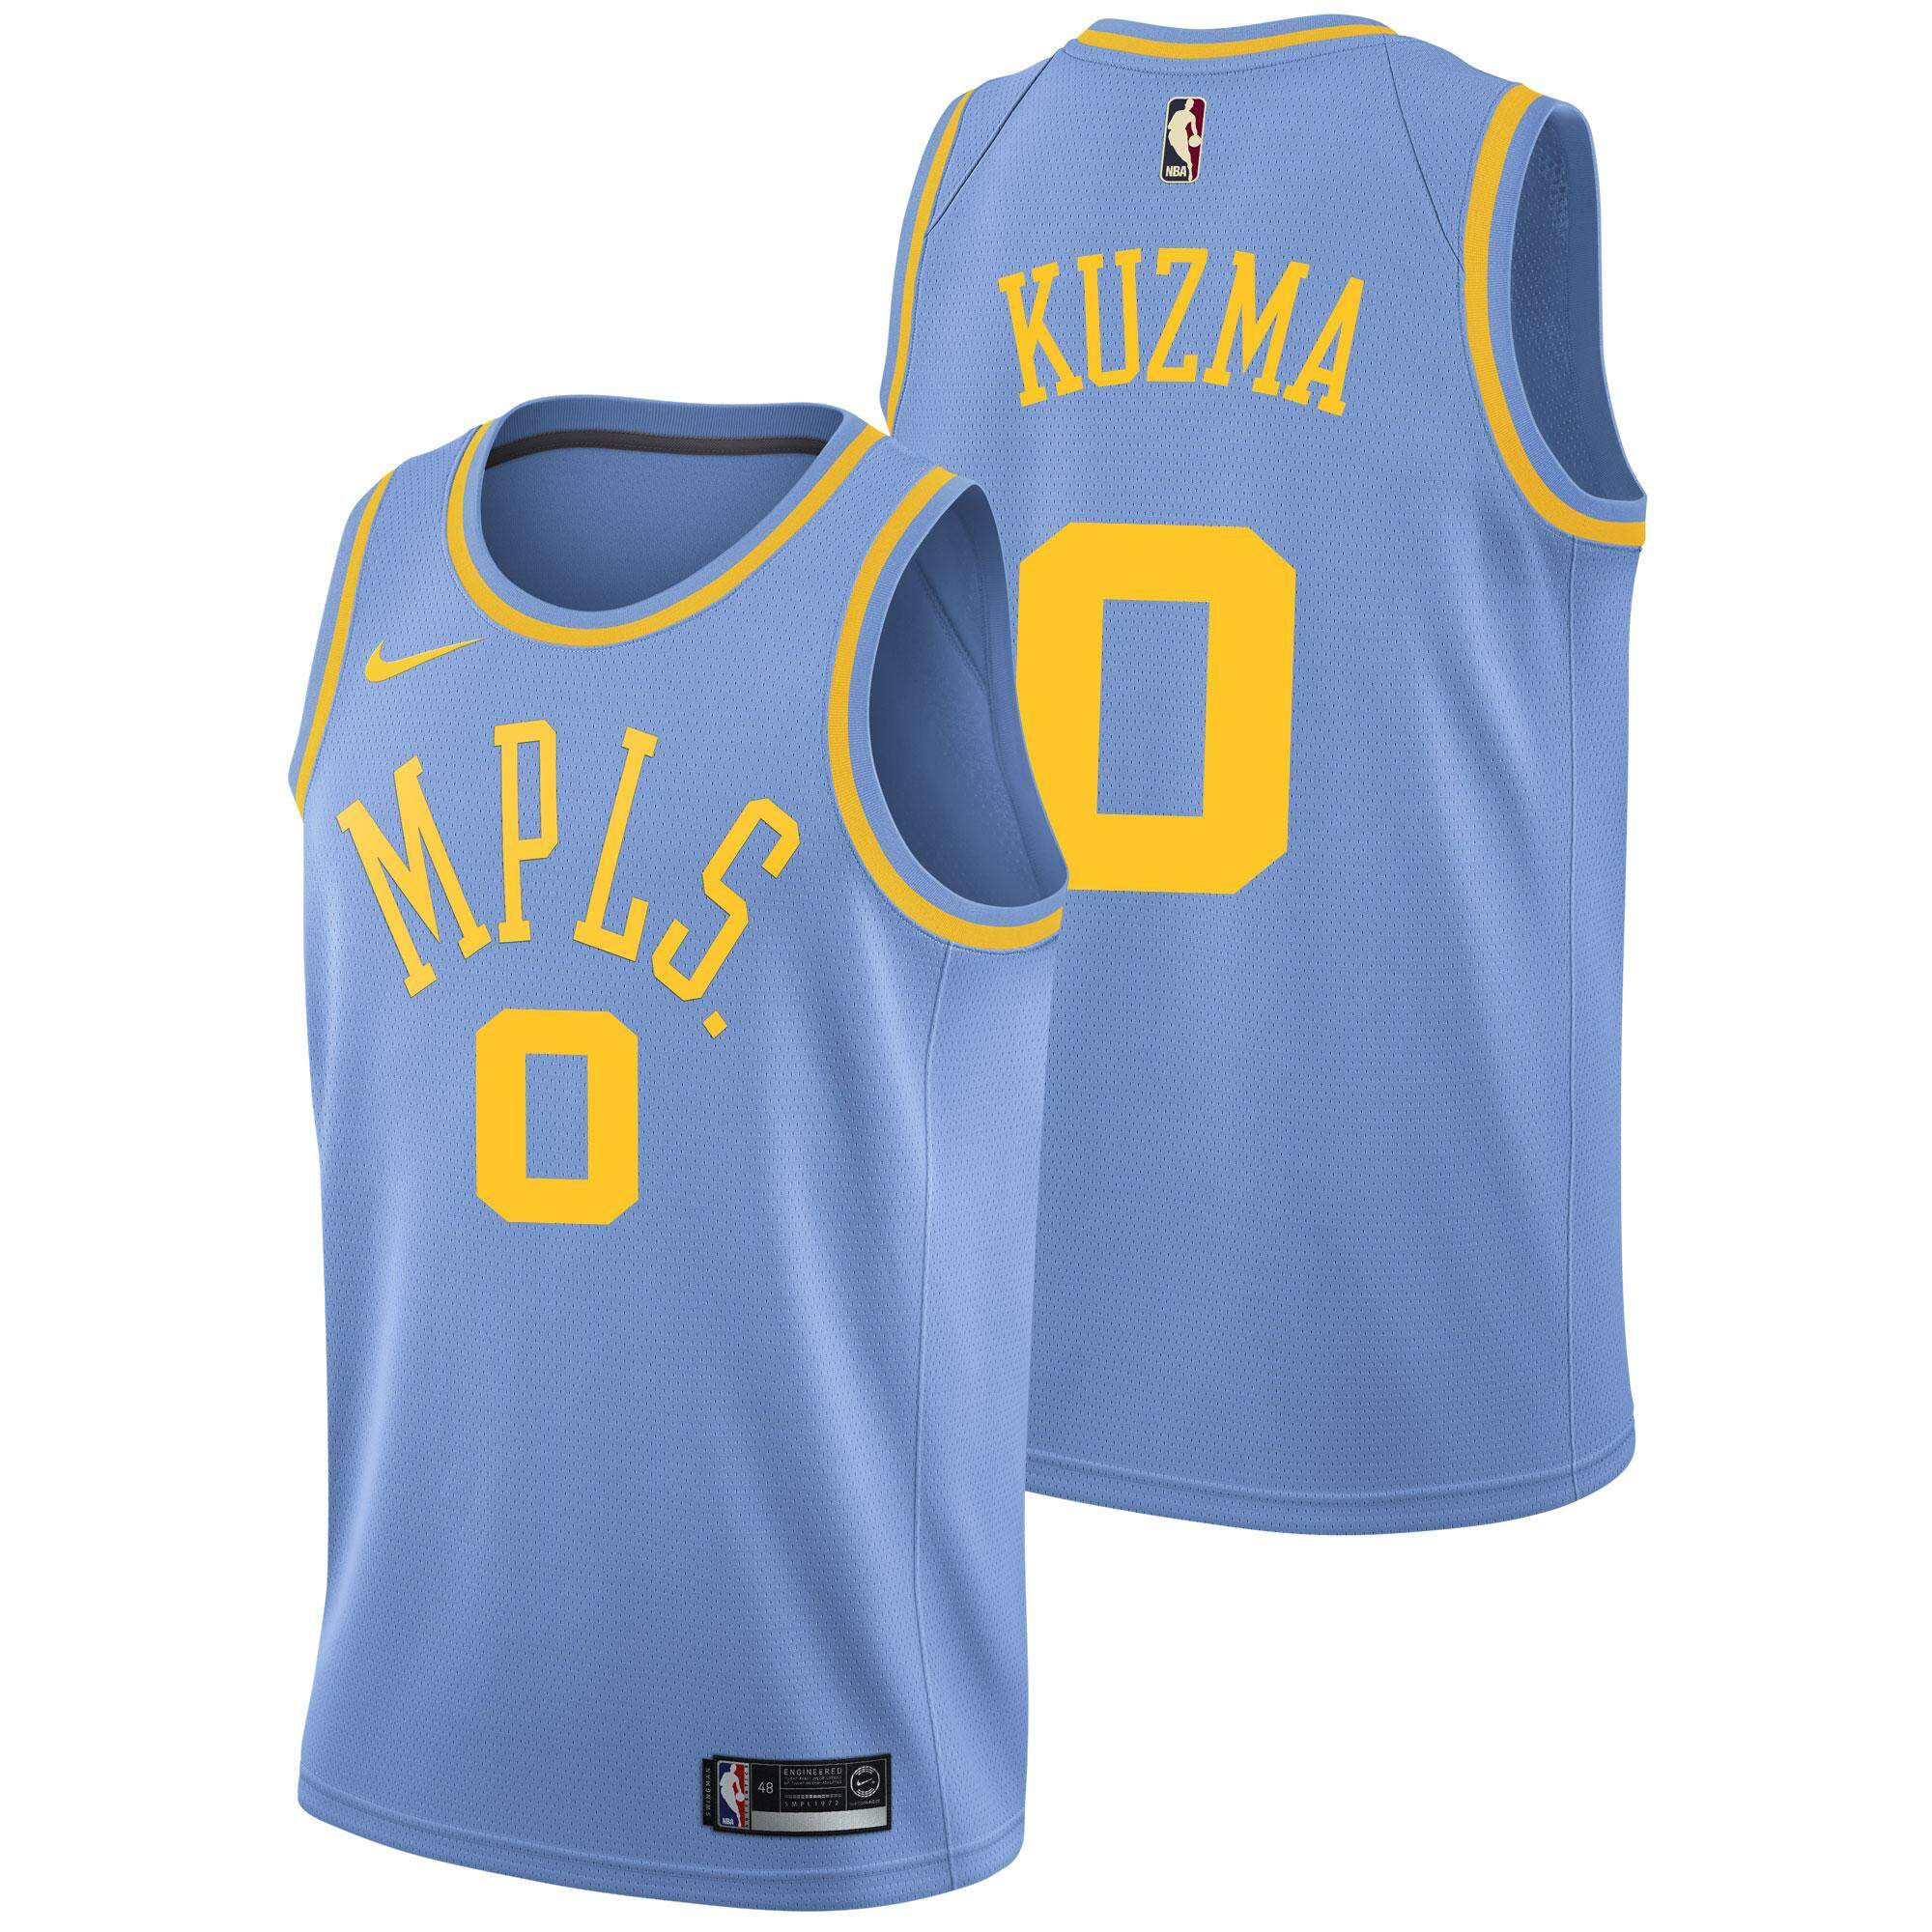 newest 2196c 203fb 2019 Genuine NBA Swingman Jersey For Male Lakers Kyle Kuzma Num 0  Basketball Clothes Dry Fast Official Adult Size small White Association  Edition